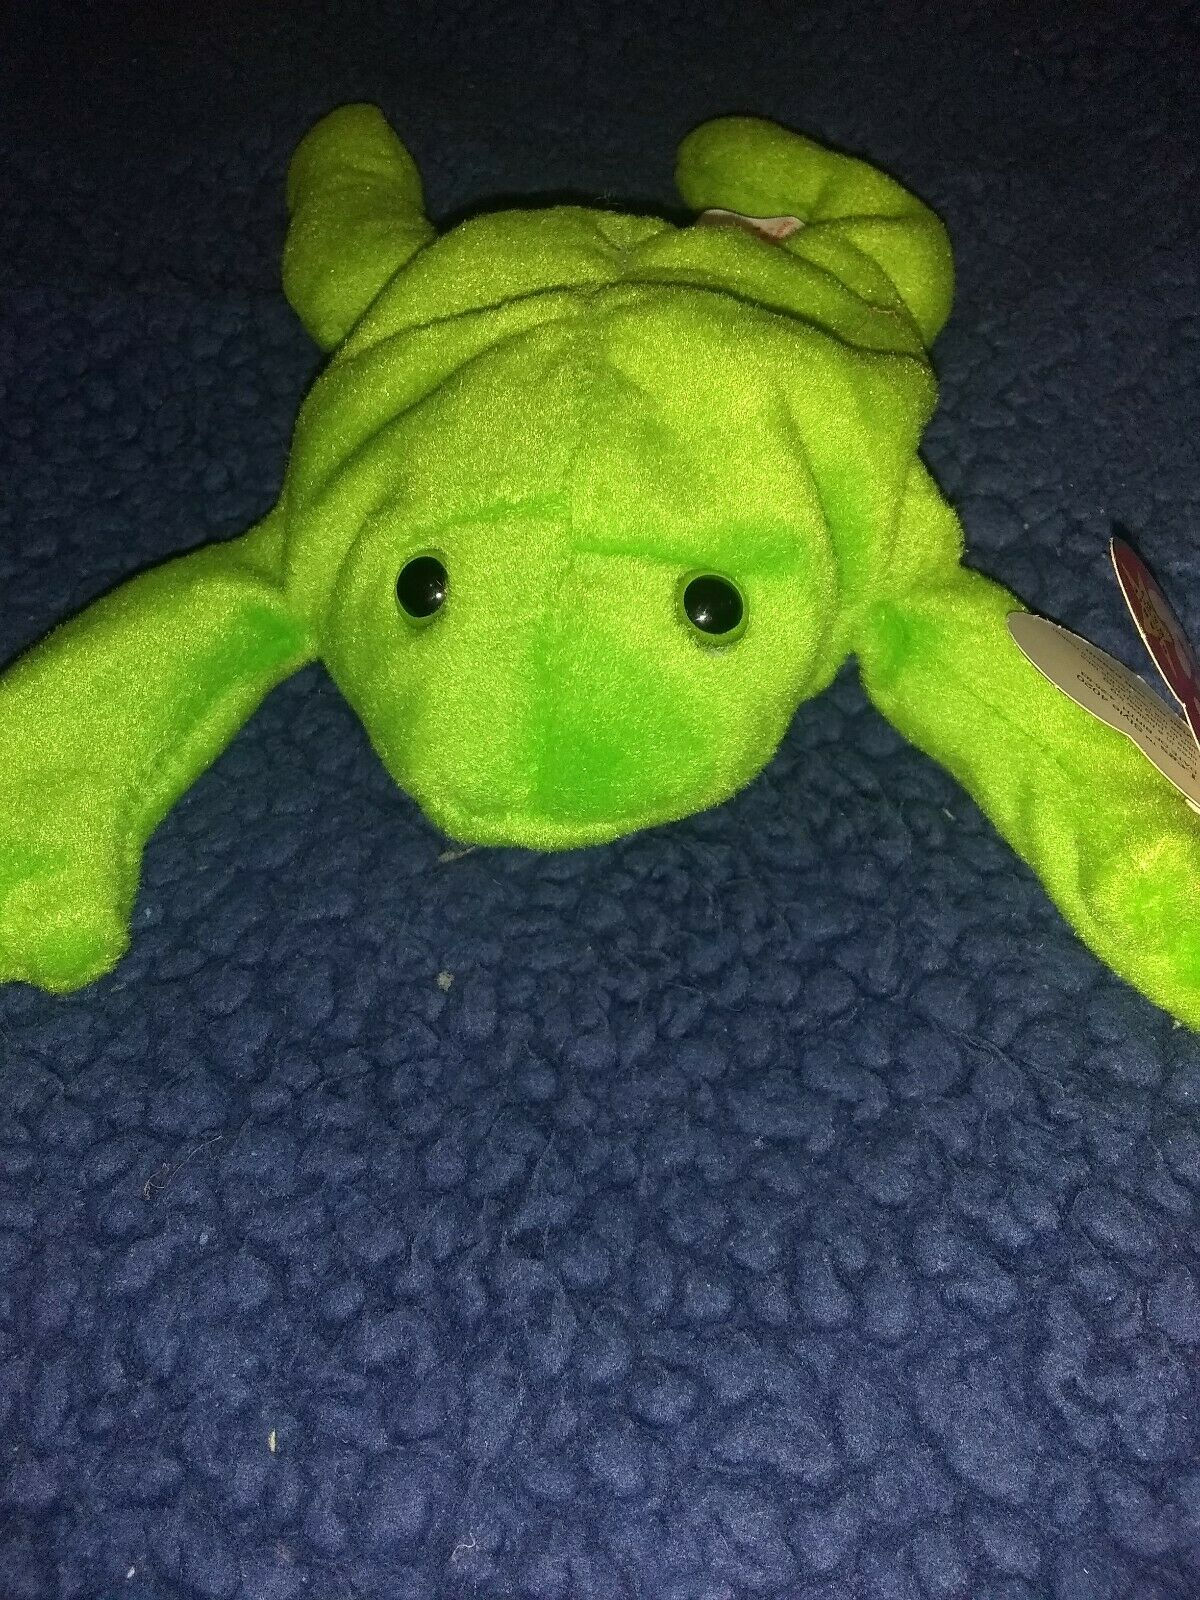 Rare  Legs the Frog  Beanie Baby 1993 Retired w  many errors perfect condition